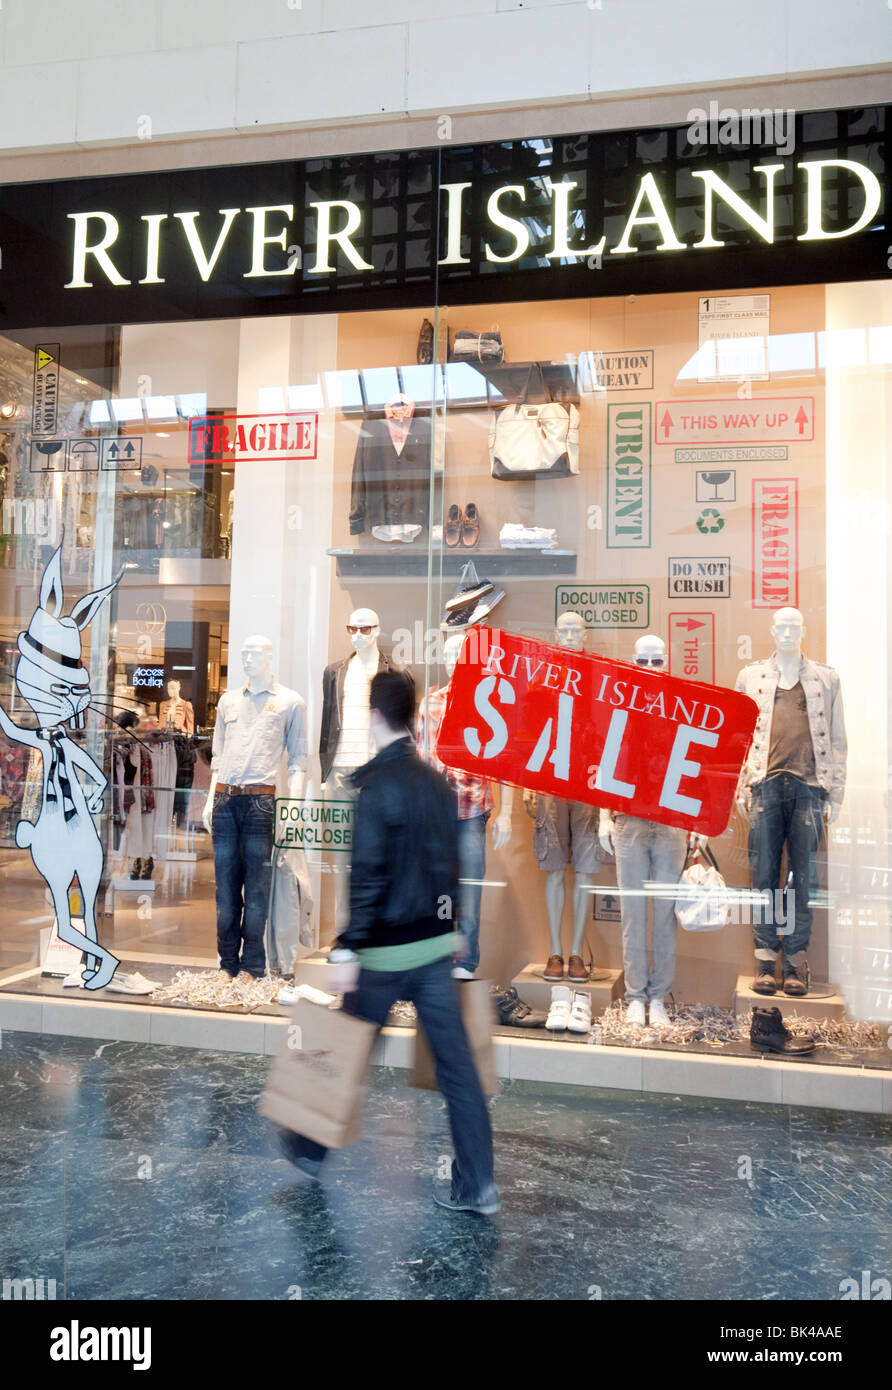 A sale at River Island clothing store, Bluewater shopping mall, Dartford, Kent, UK Stock Photo